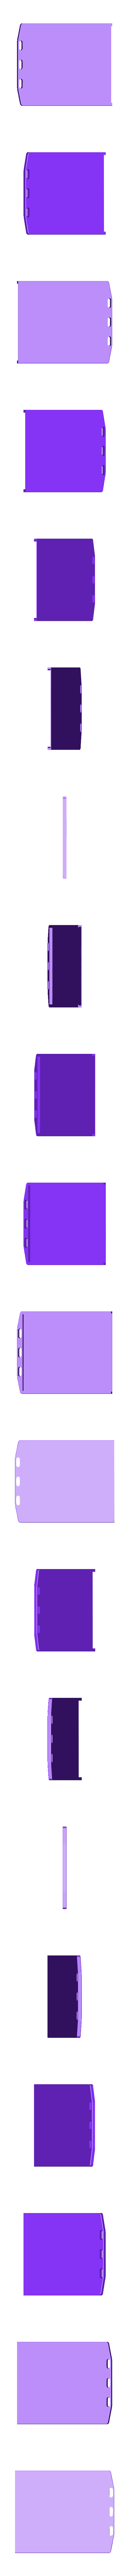 Flat-6_SD_Card_Cover_v1-2.STL Download free STL file Flat SD Card Holder • 3D print template, WalterHsiao